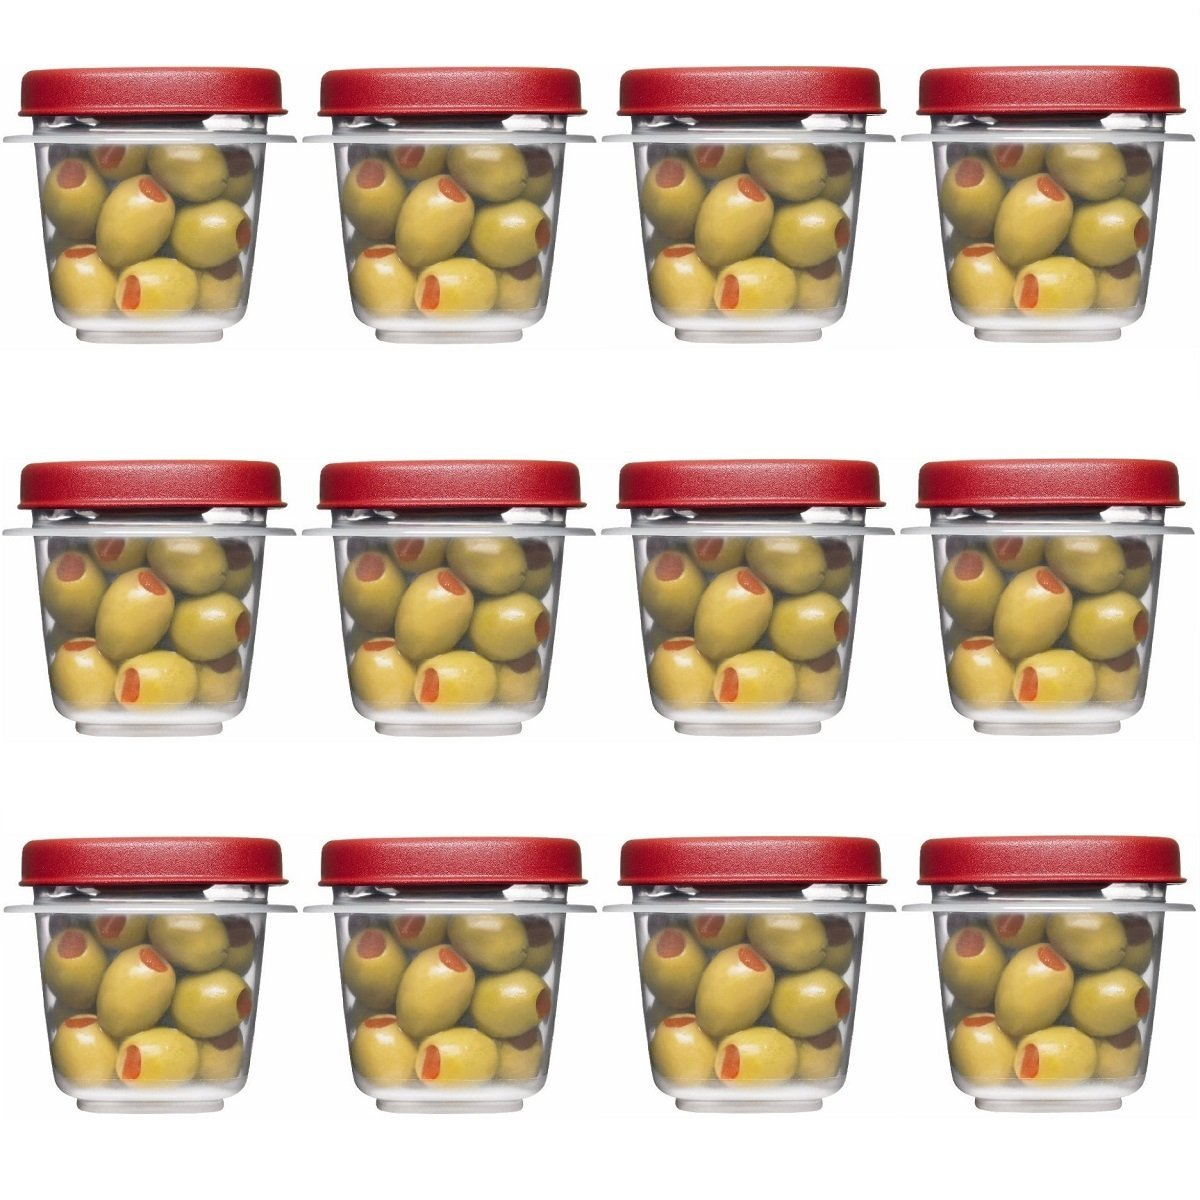 Rubbermaid Easy Find Lids Square 1/2-cup Food Storage Container (Pack of 8 Cups)